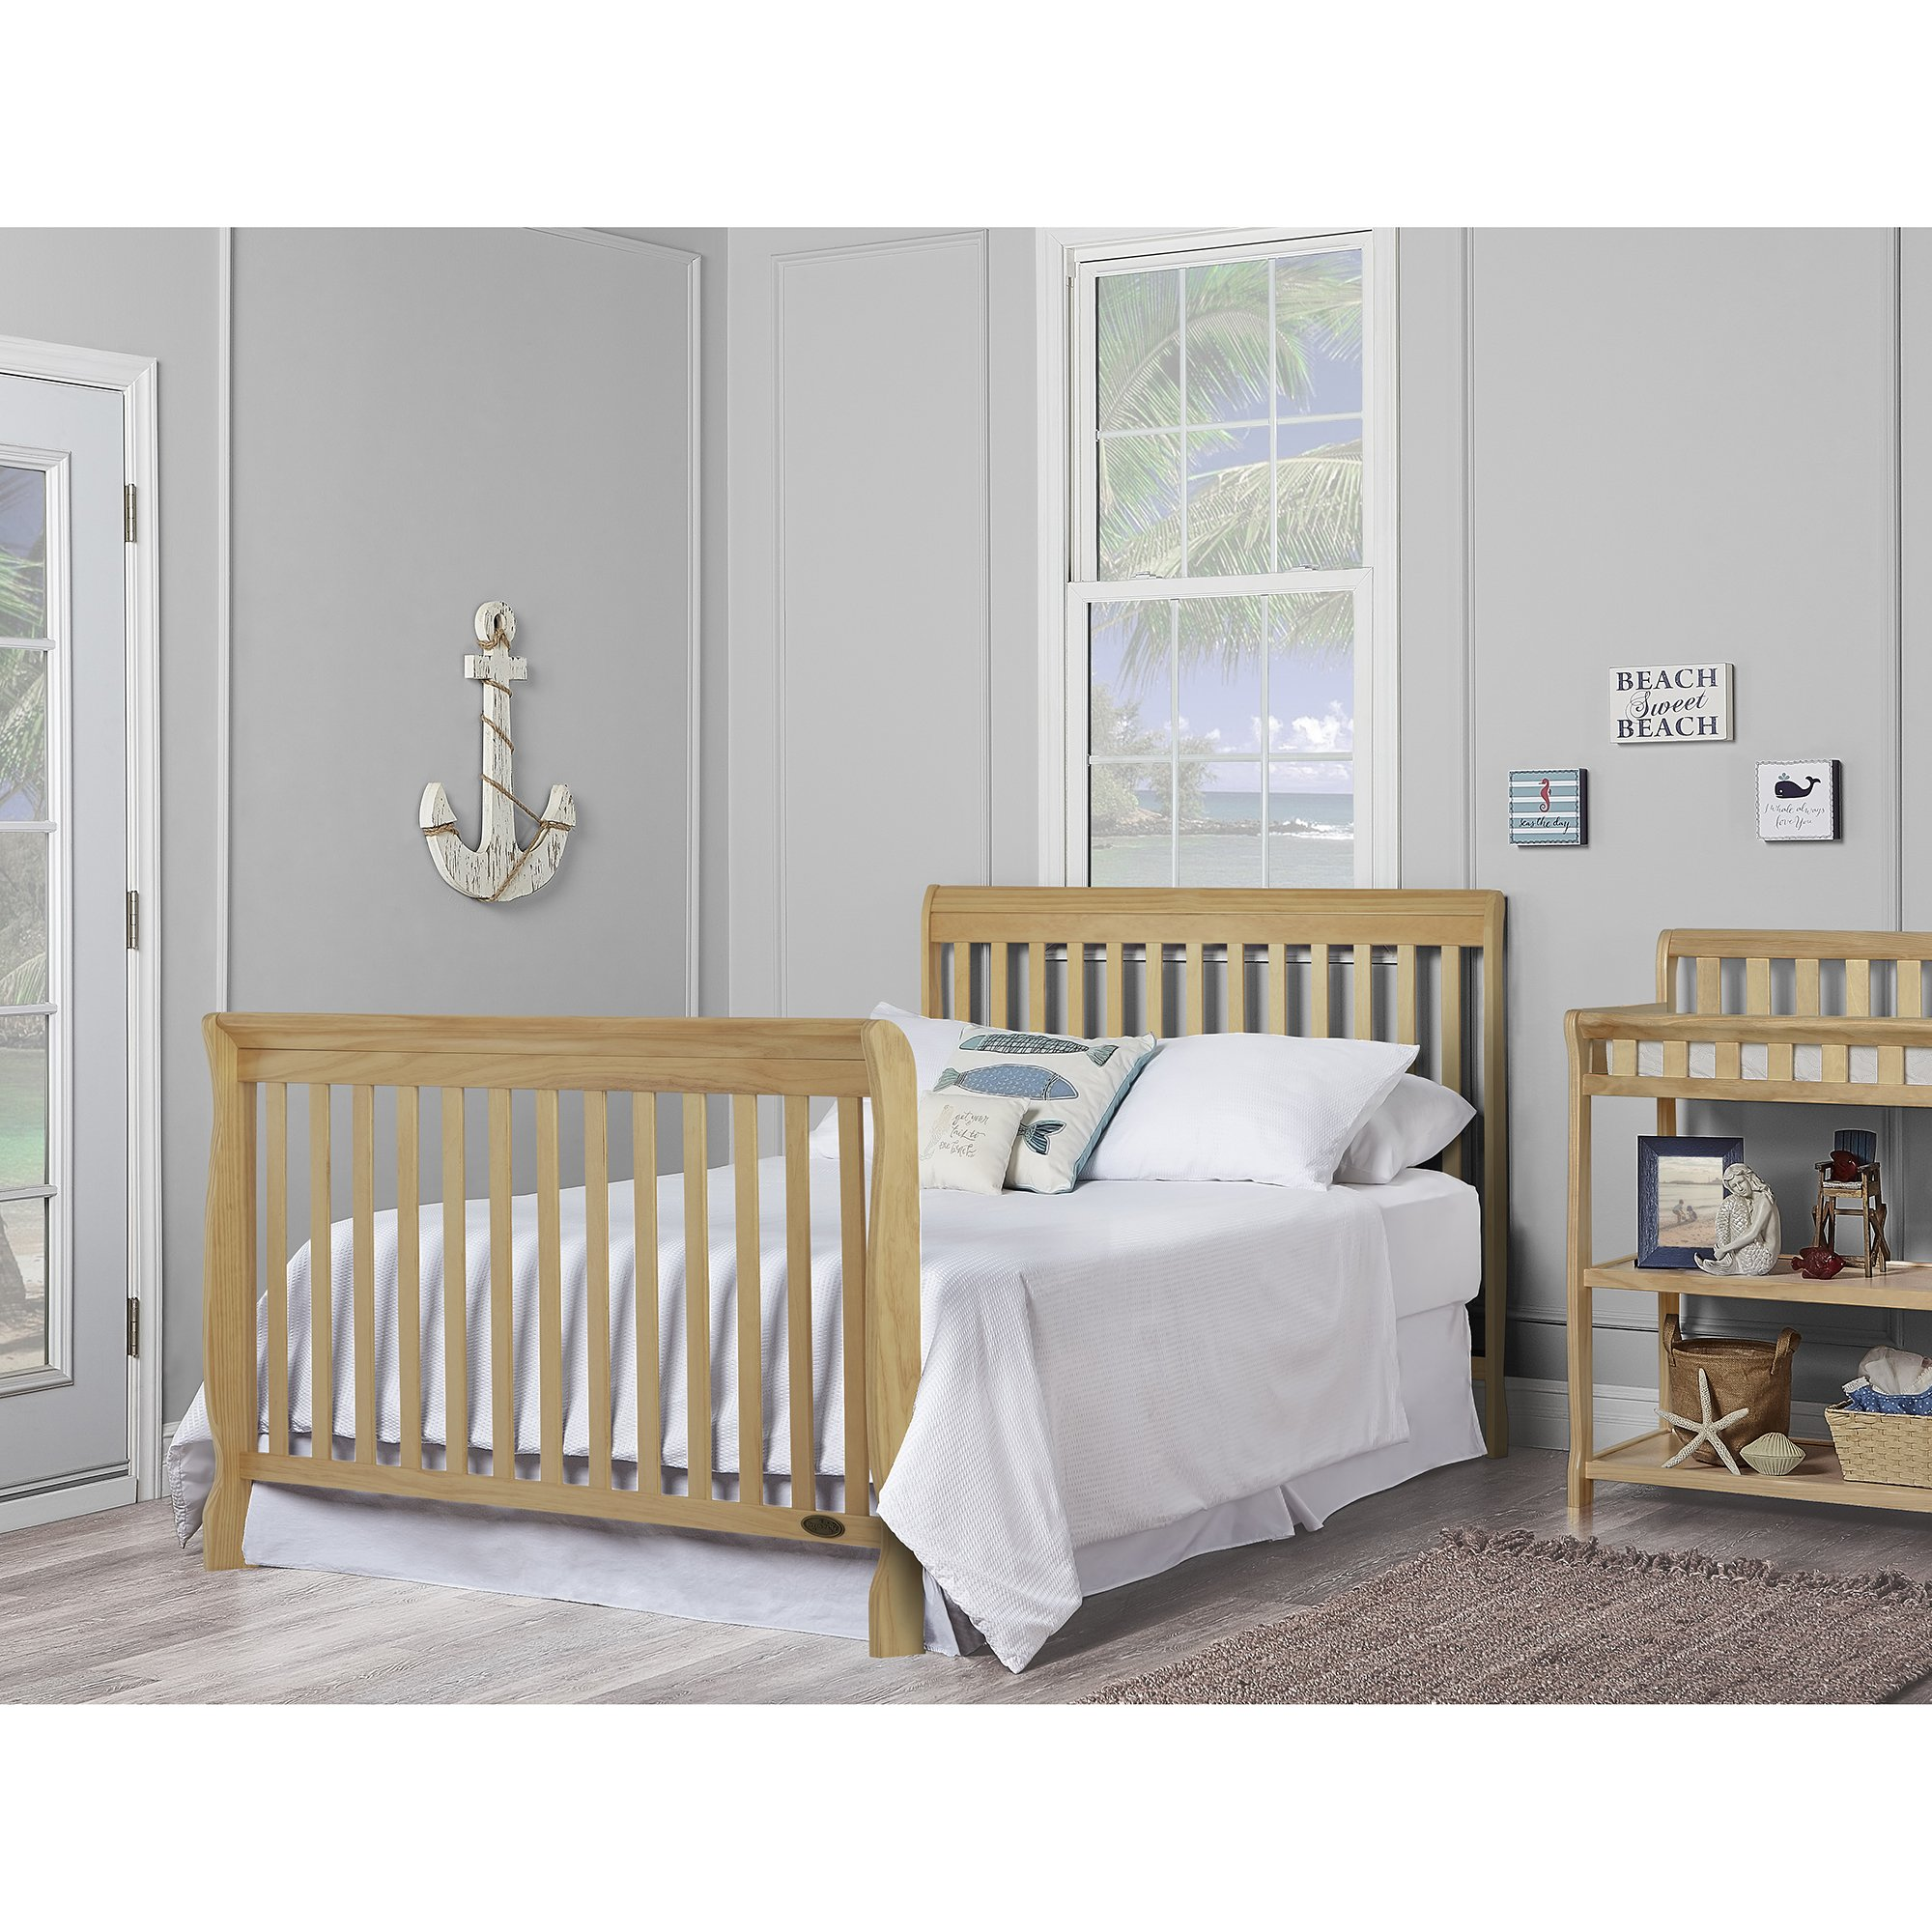 Dream On Me Ashton 5 in 1 Convertible Crib, Natural by Dream On Me (Image #6)